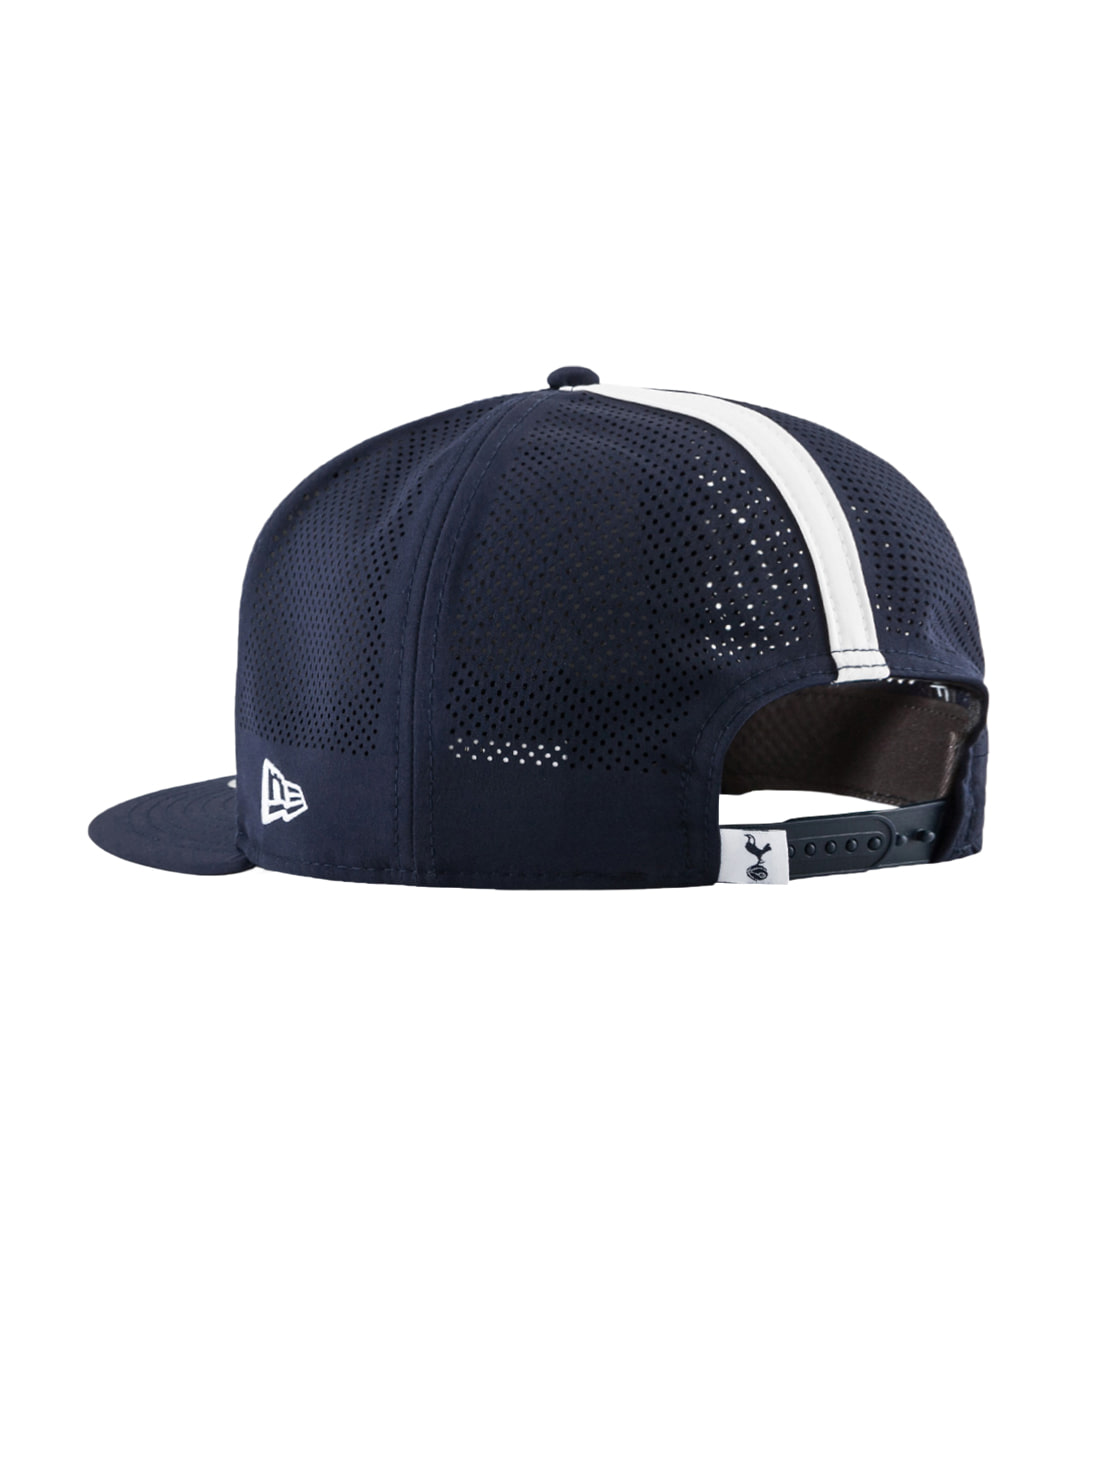 (Sold Out) TOTTENHAM PERFORATED MESH SNAPBACK - NAVY